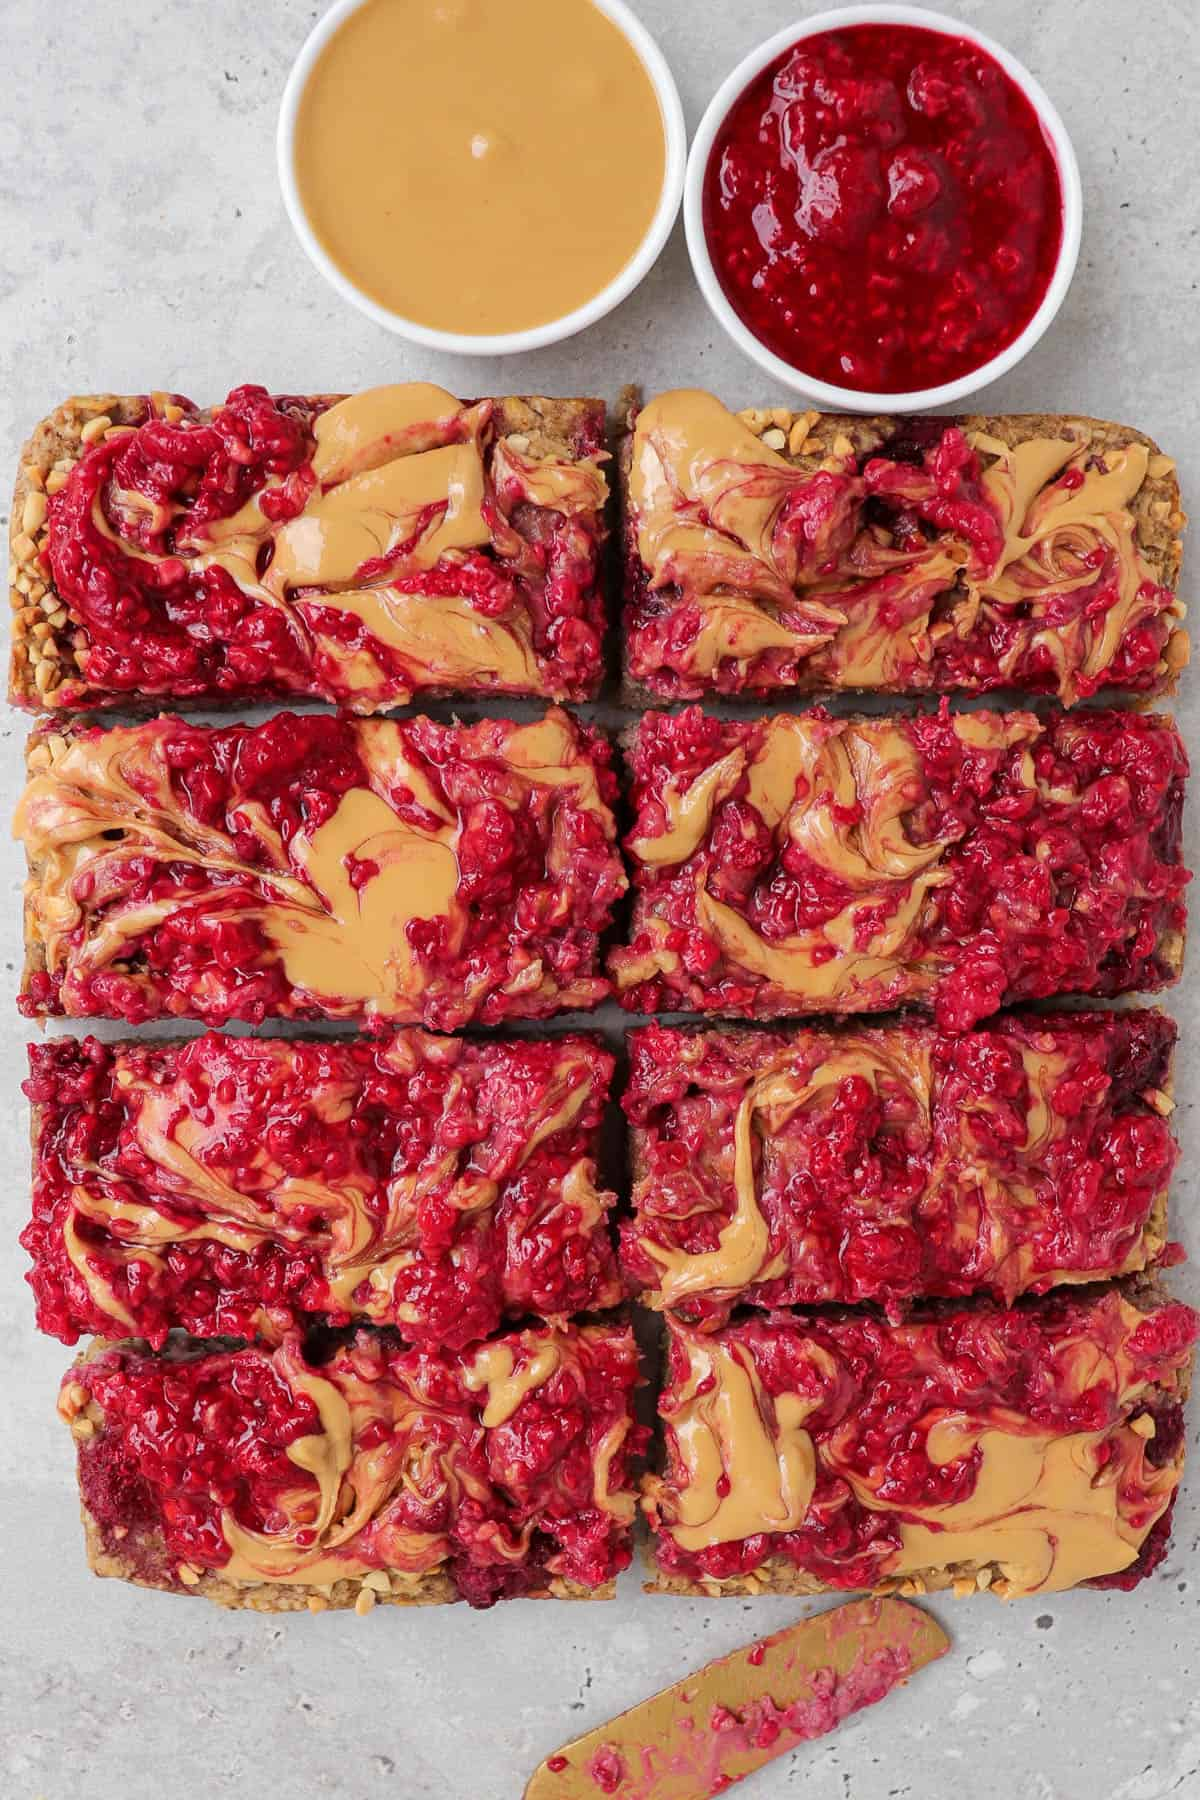 Peanut butter and jelly oatmeal cut up into bars. Small dish of peanut butter, mashed raspberries and gold knife on sides.